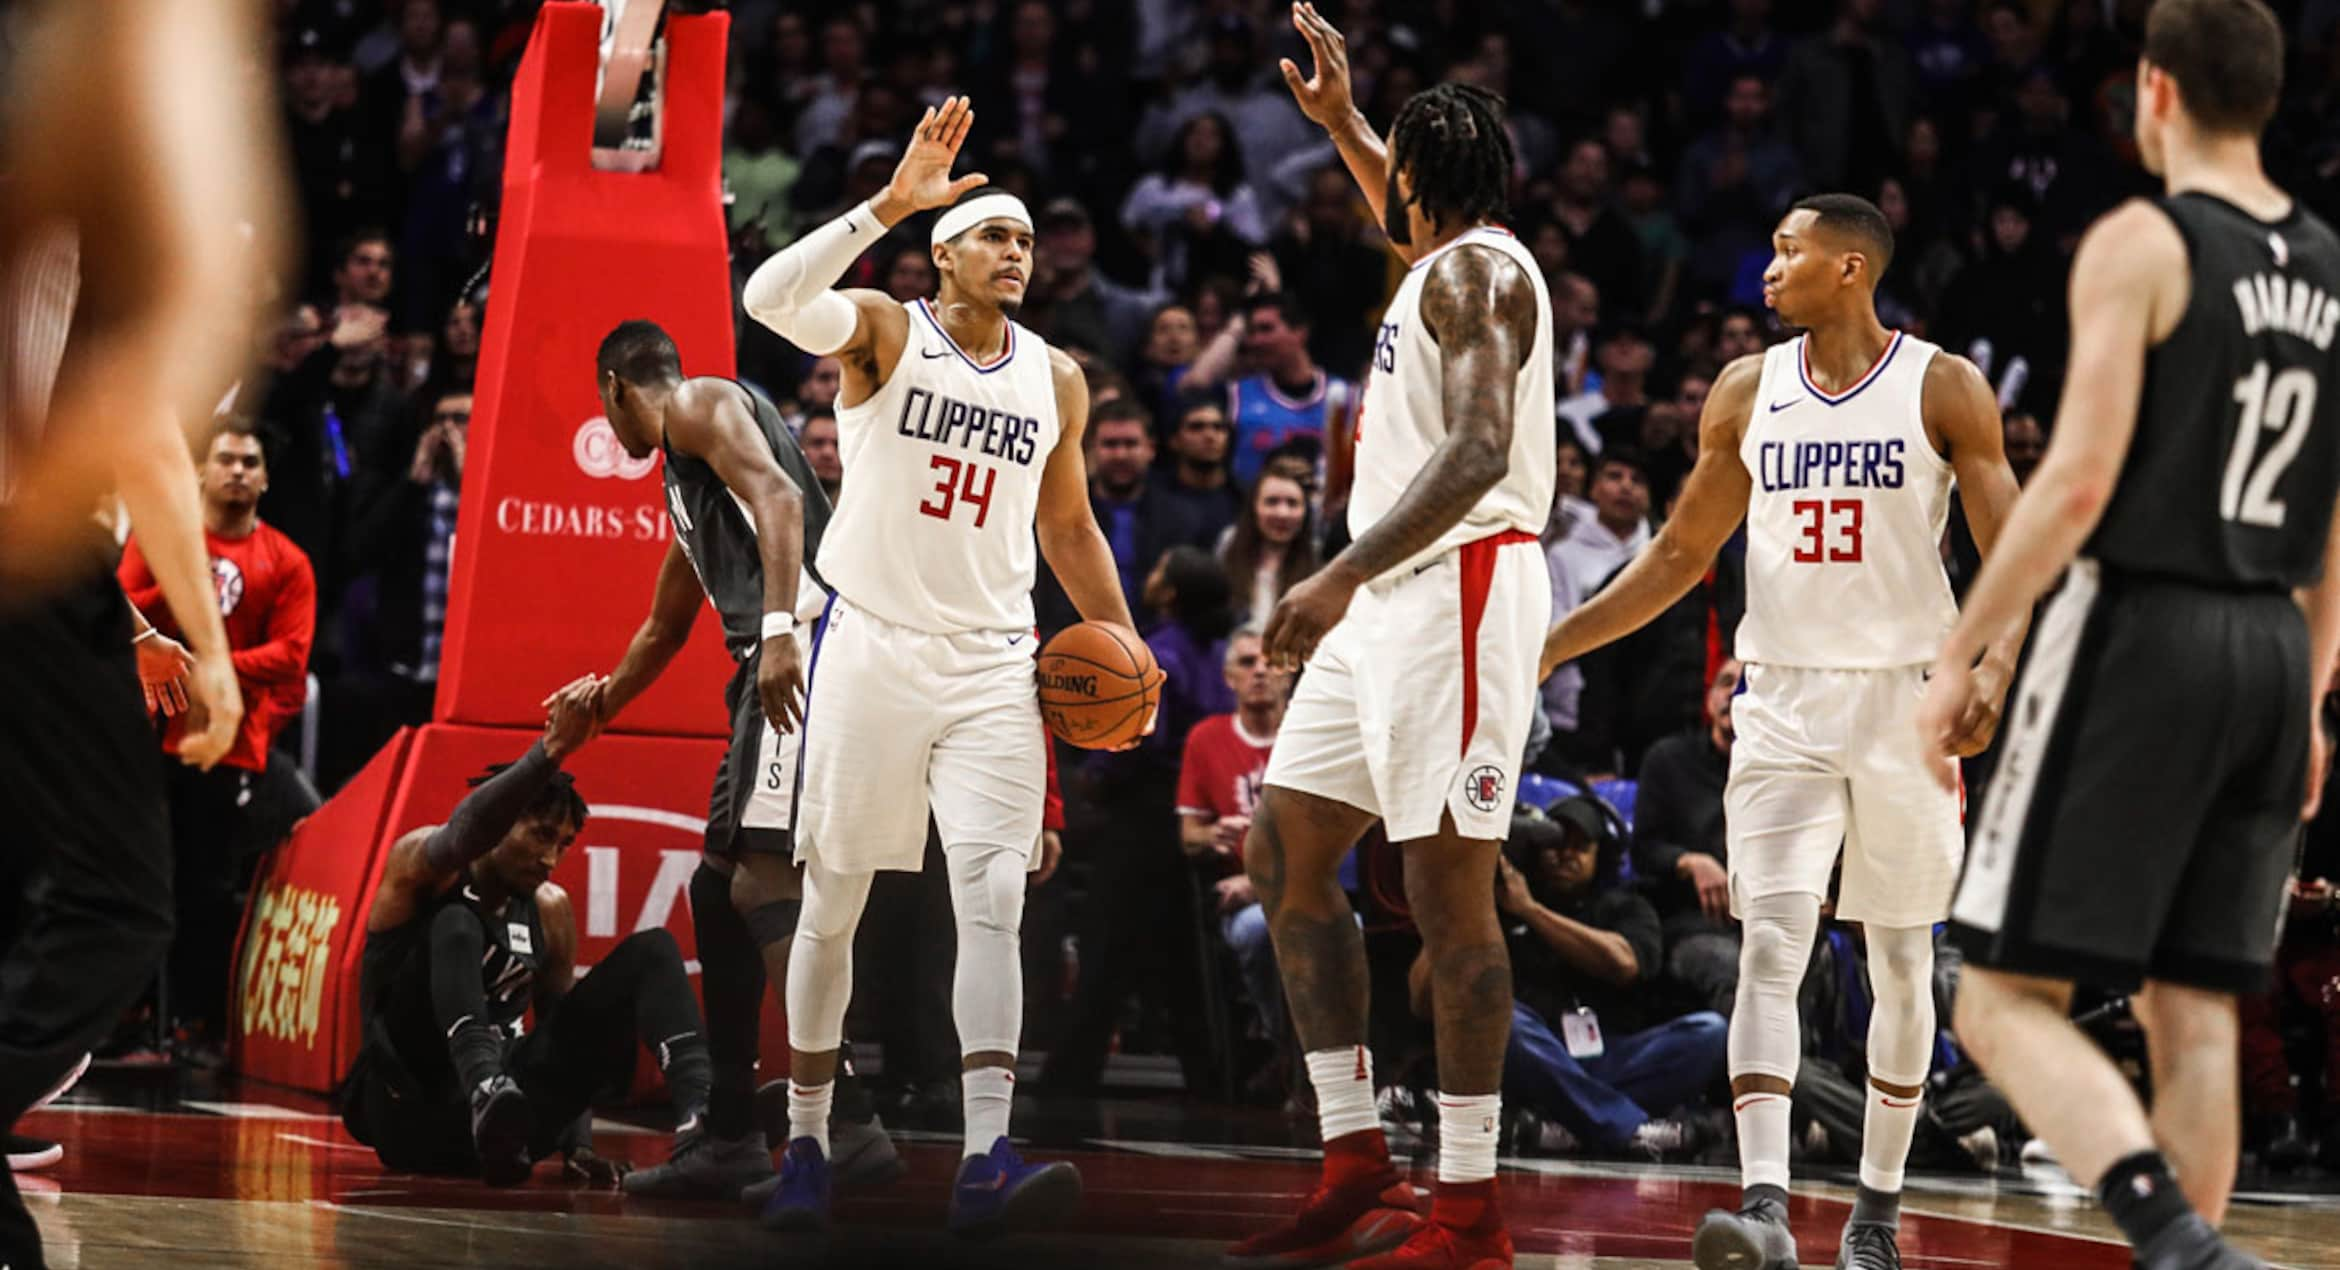 Revitalized Clippers hitting their stride